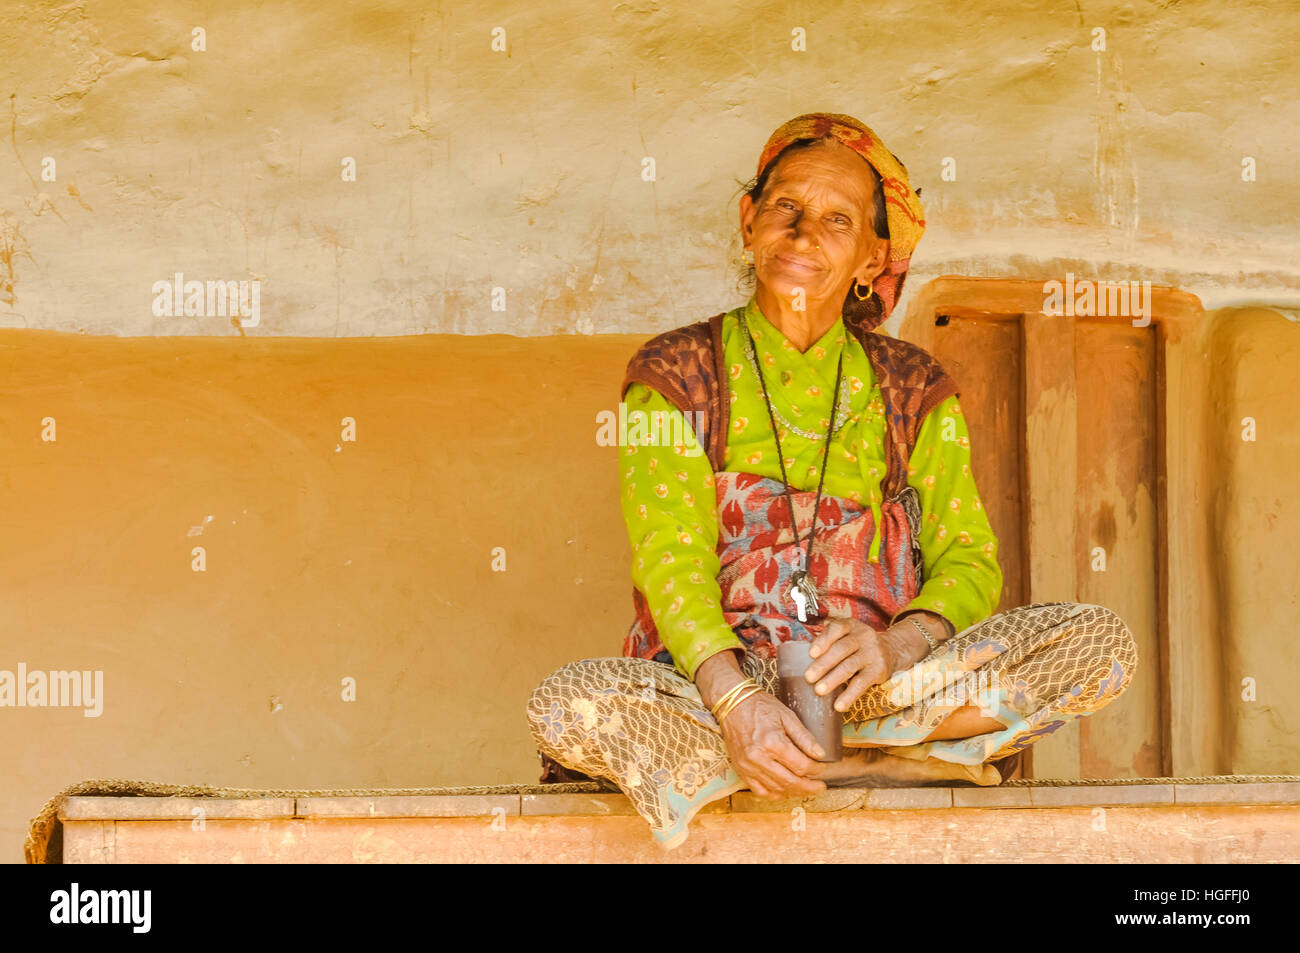 Beni, Nepal - circa May 2012: Old woman in yellow shirt with headcloth sits cross-legged on bench in Beni, Nepal. - Stock Image